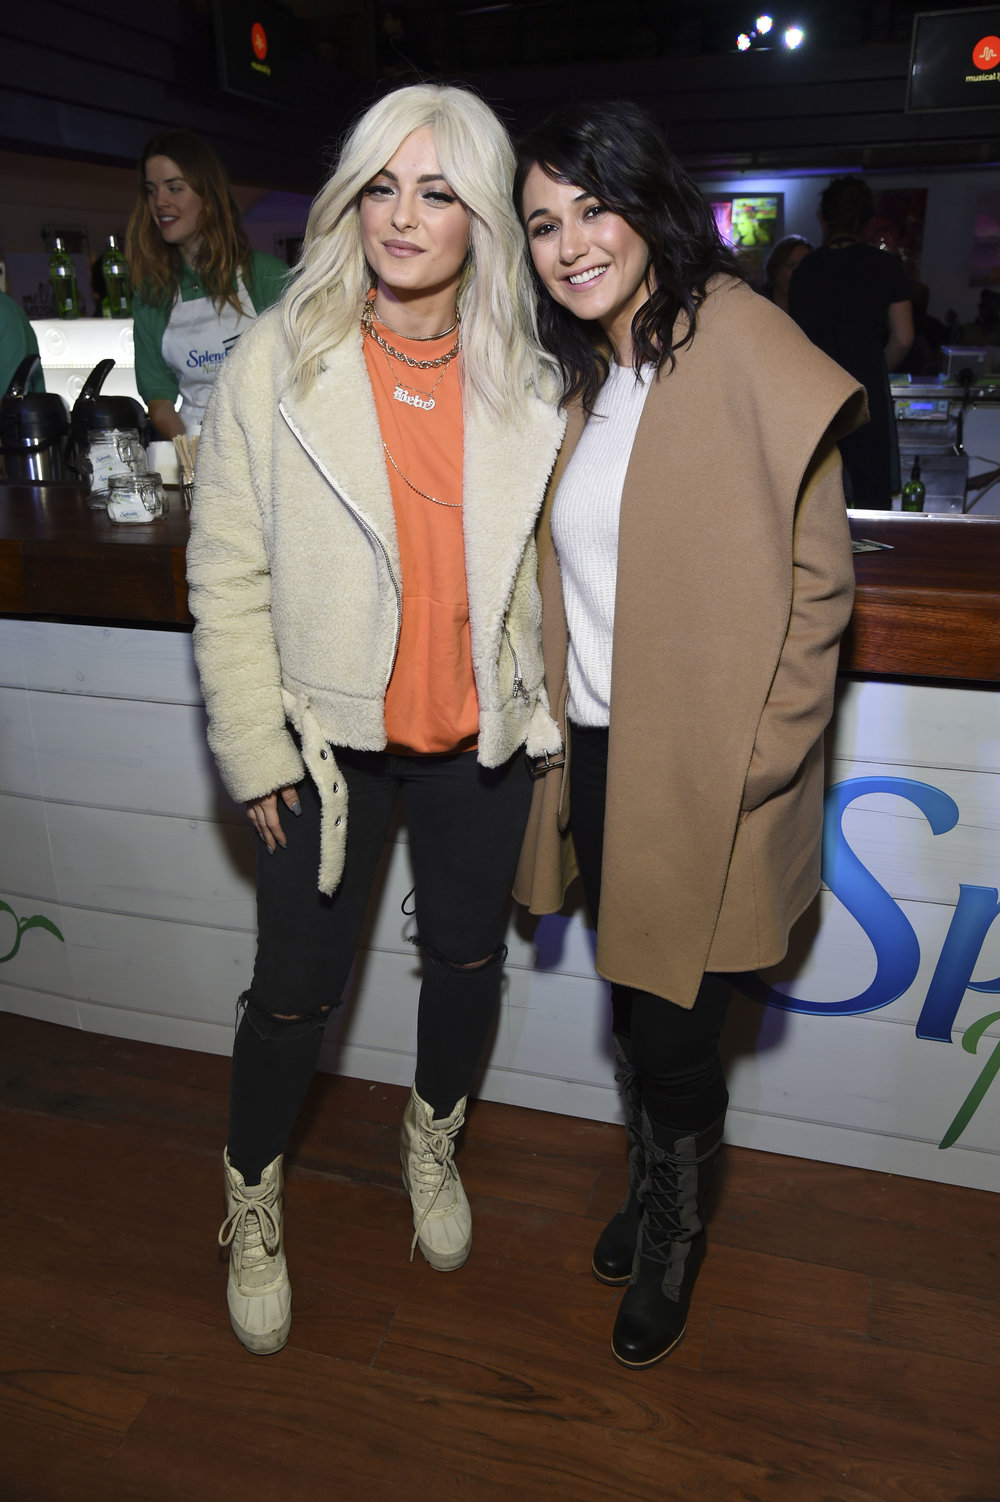 Emmanuelle Chriqui and Bebe Rexha enjoying some coffee sweetened with Splenda while hanging on Main Street in Park City during the Sundance Film Festival - Jan 2017